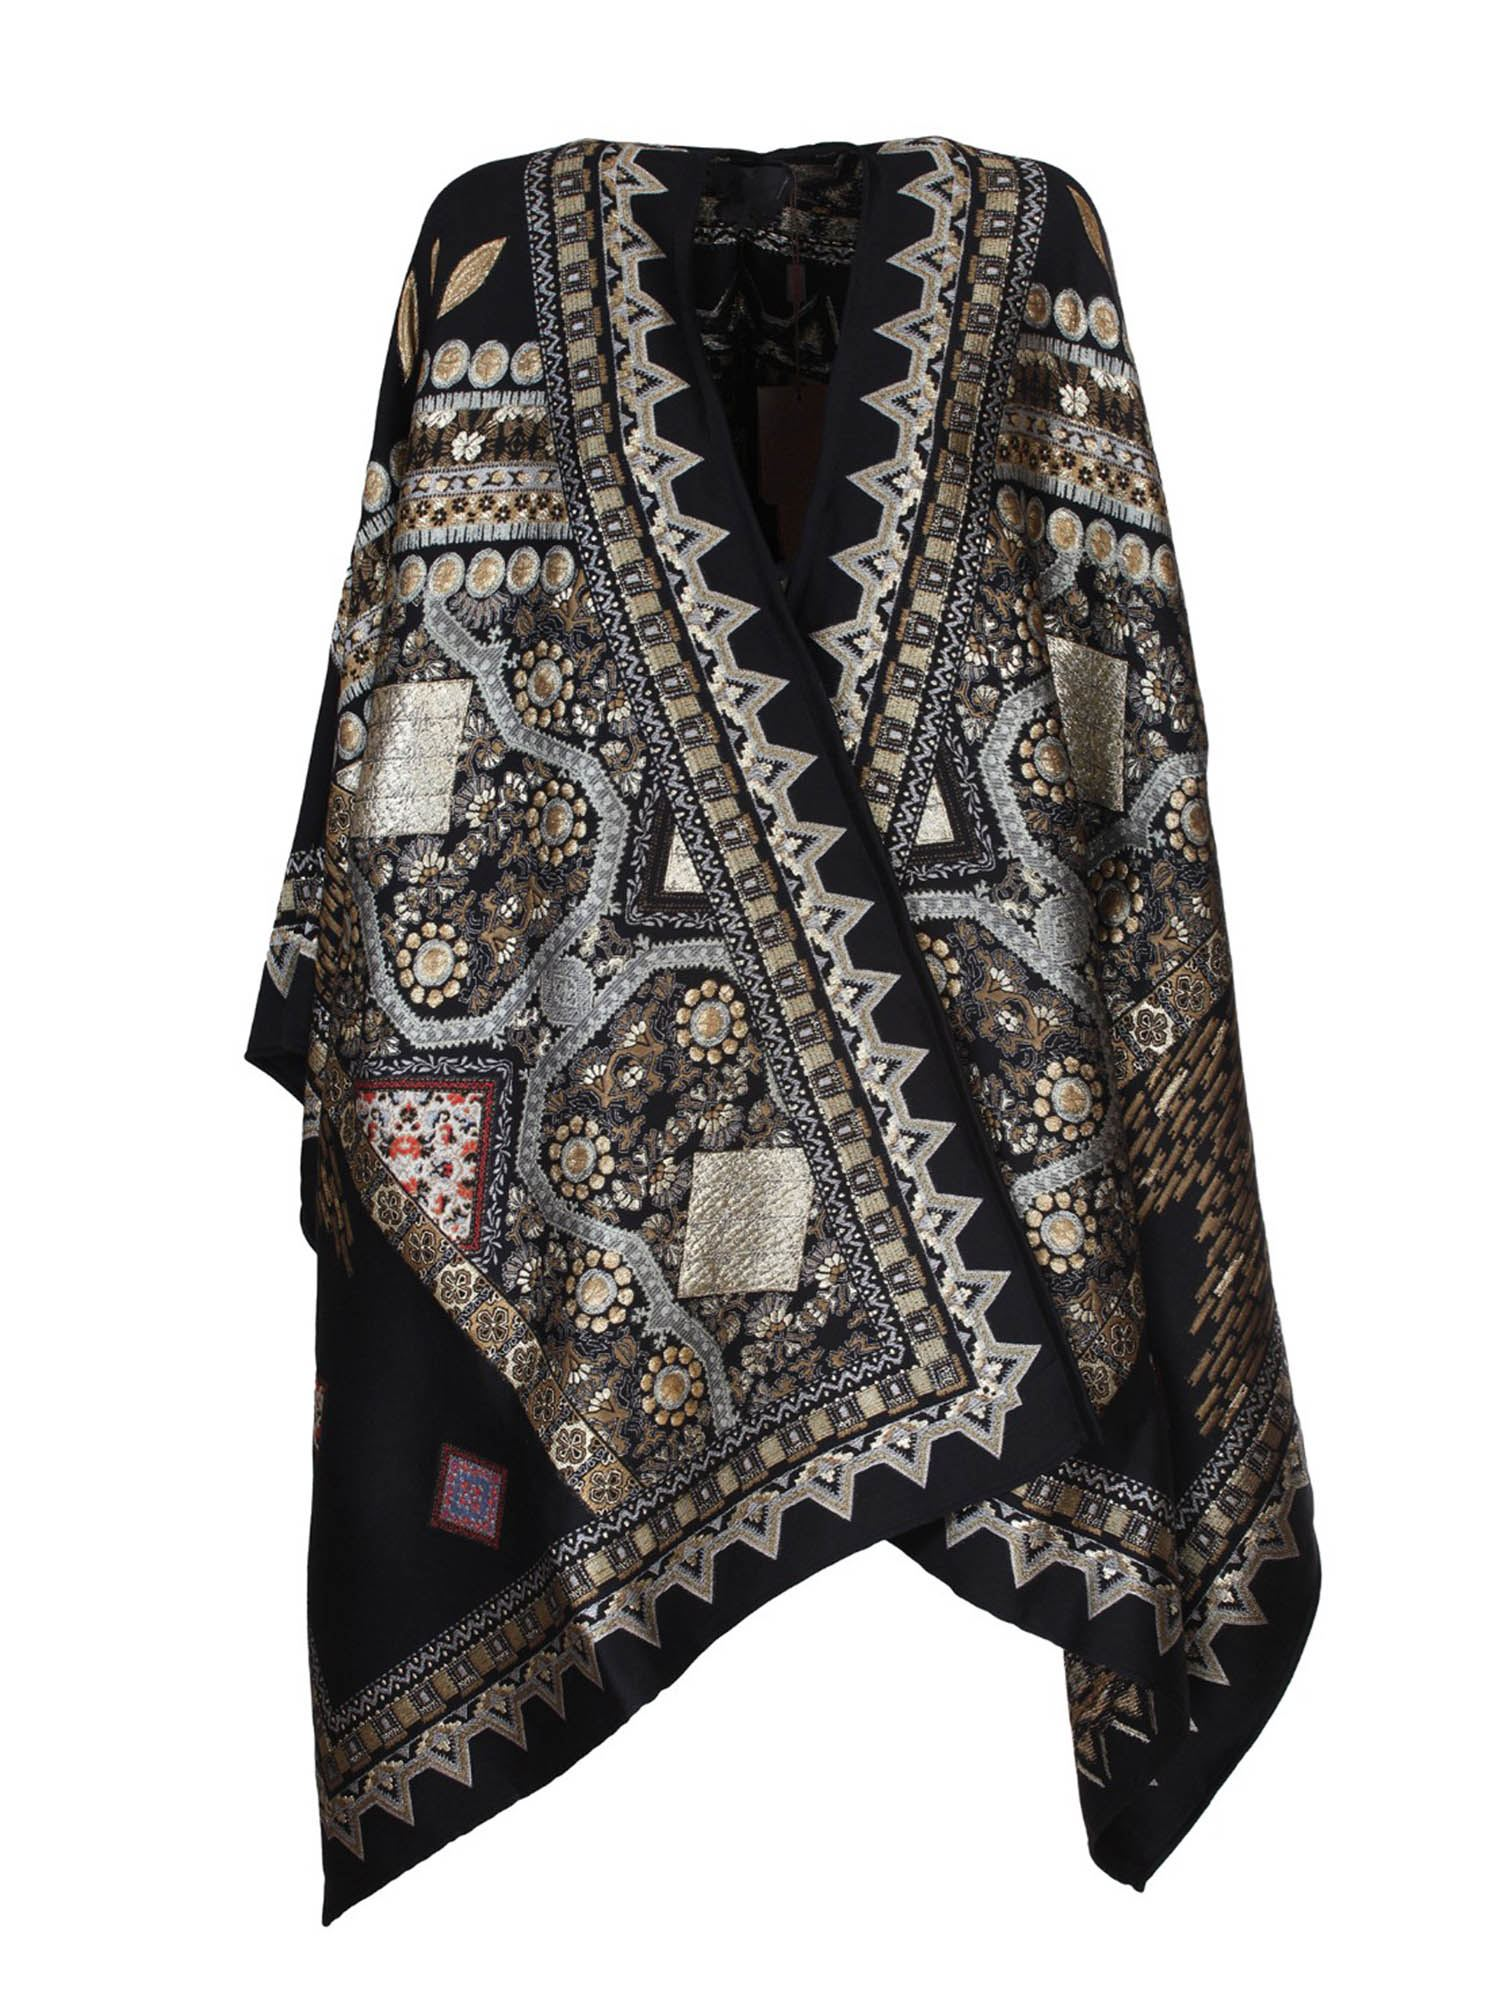 Etro PATTERNED JACQUARD WOOL CAPE IN BLACK